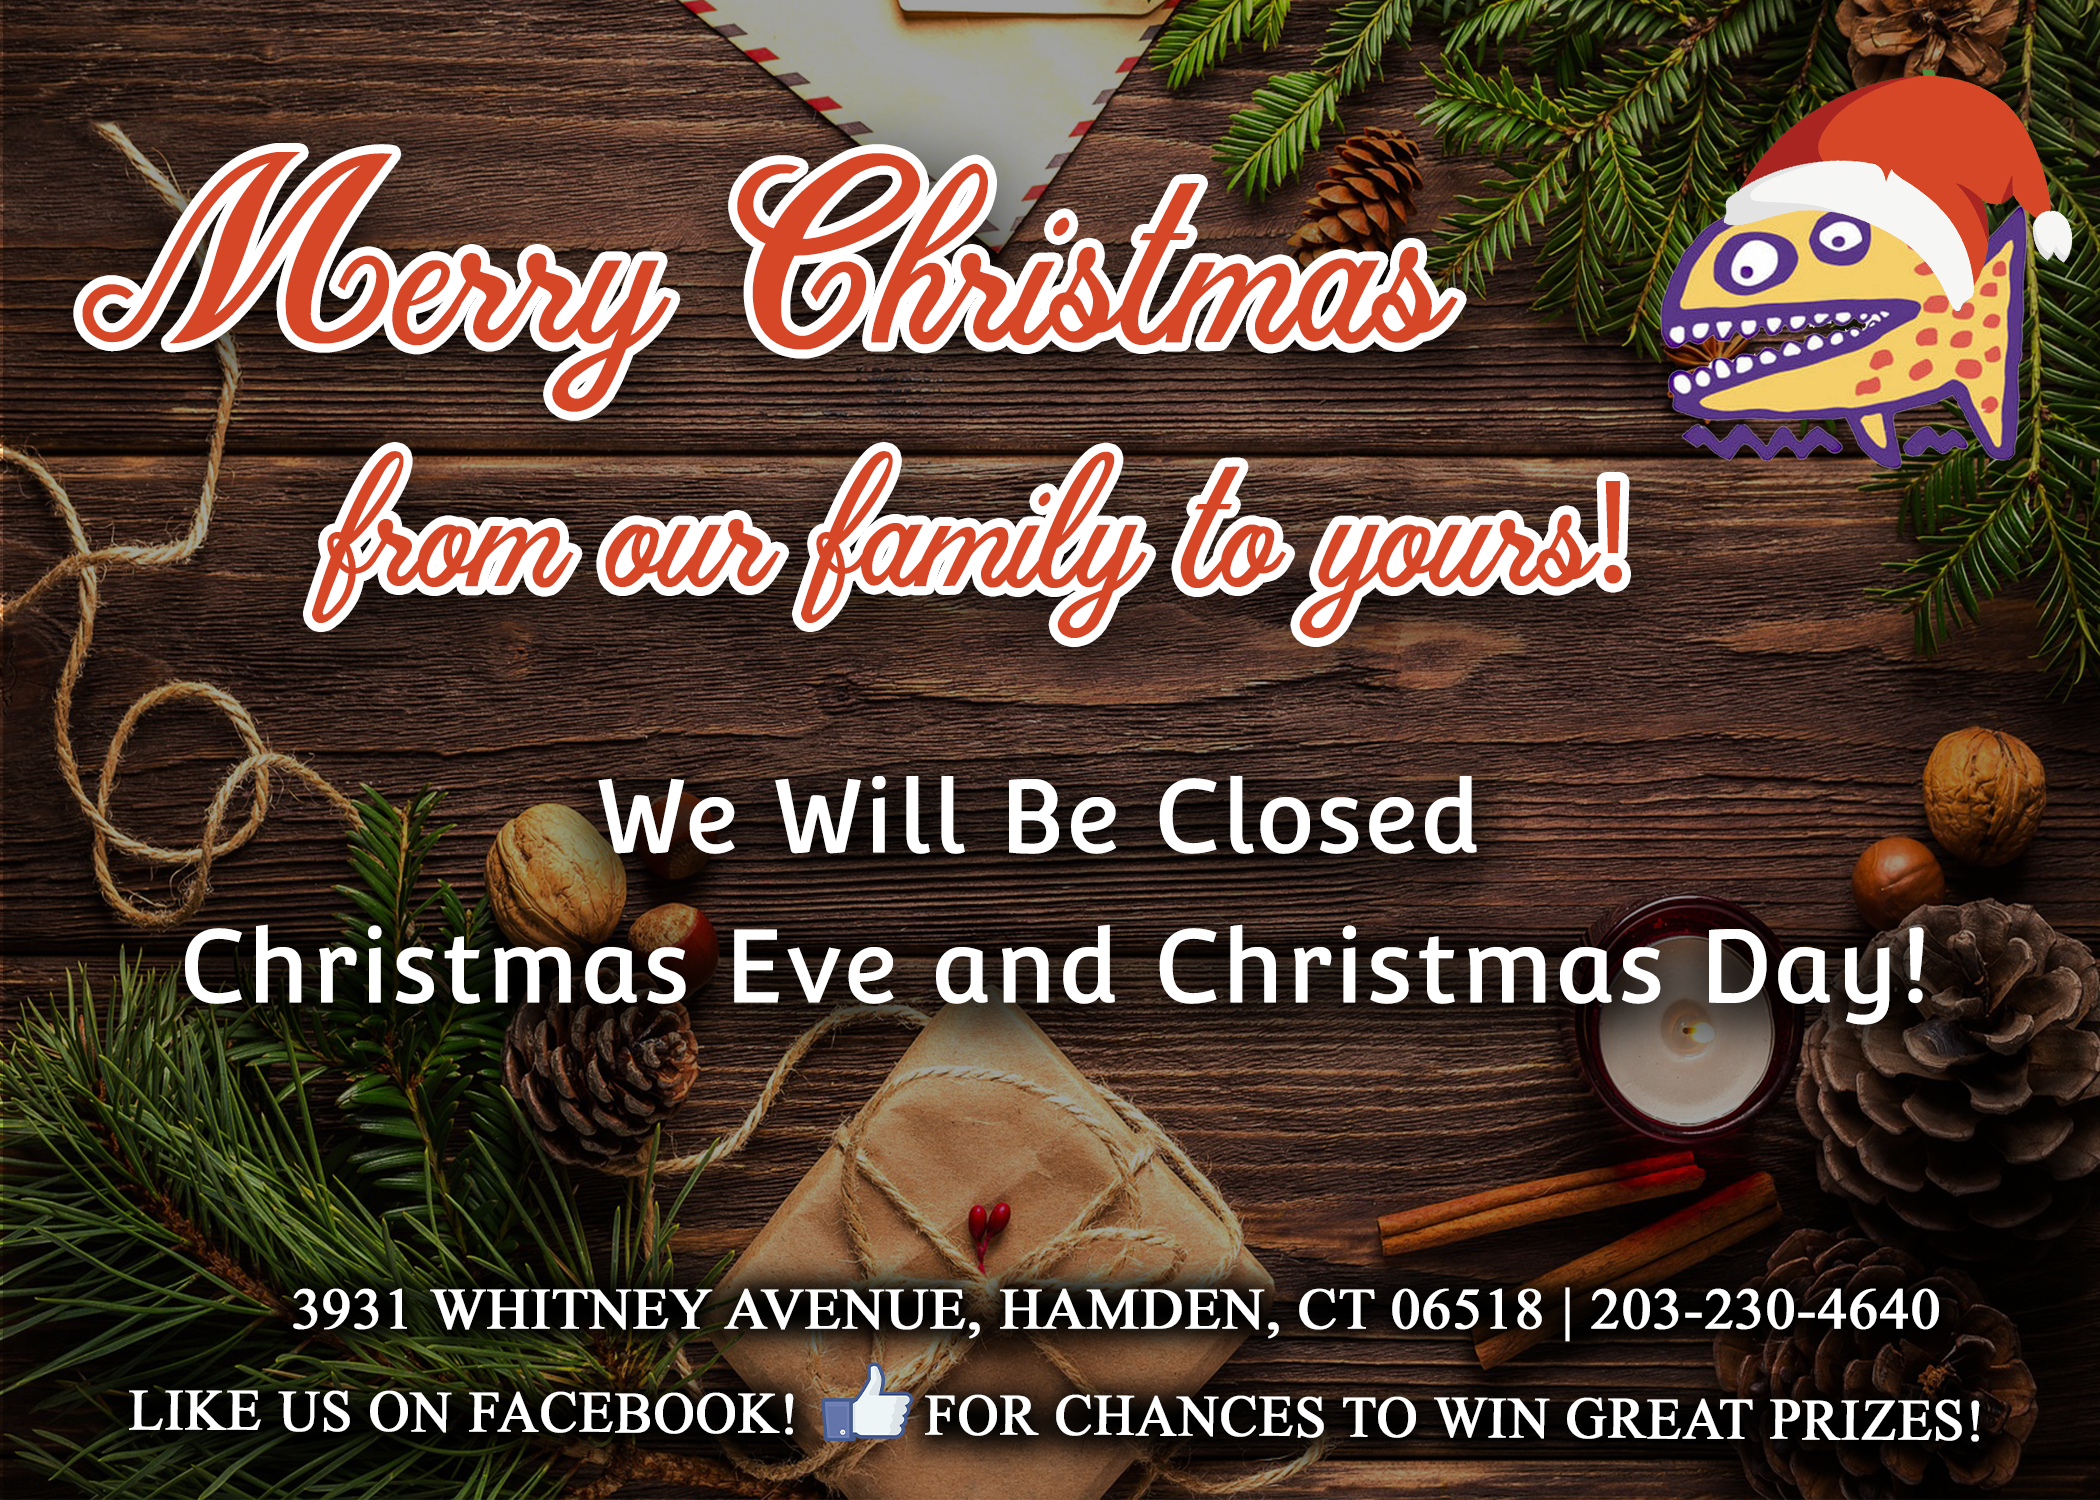 Merry christmas from our family to yours. We will be closed christmas eve and christmas day. 3931 Whitney Avenue, Hamden, Connecticut 06518. 203-230-4640. Like us on facebook for chances to win great prizes.